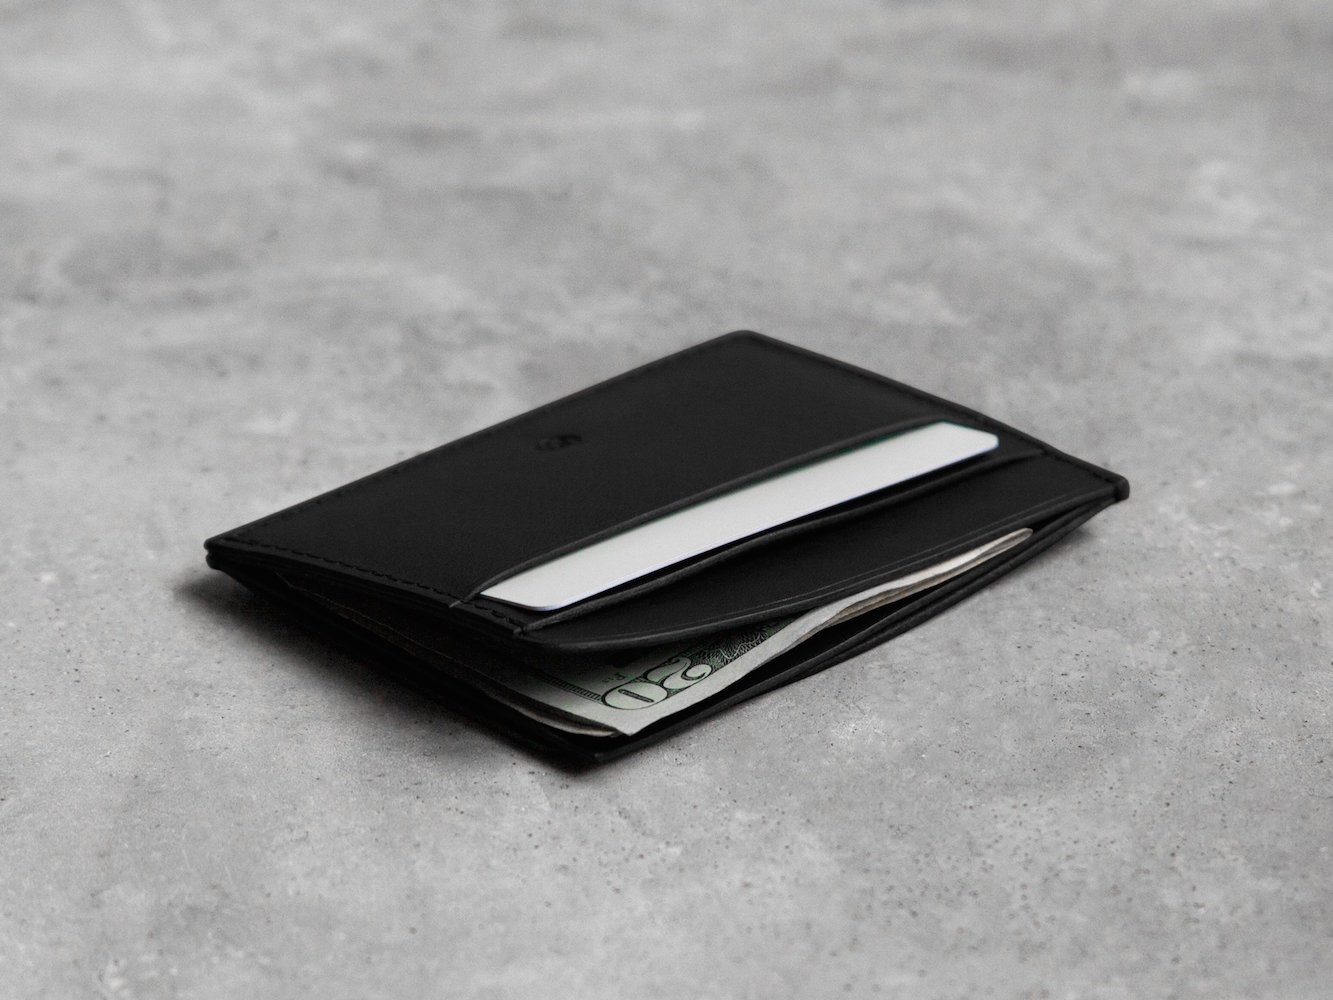 The Nolan Card Holder in Black – Handmade and Waxed to Extend Durability